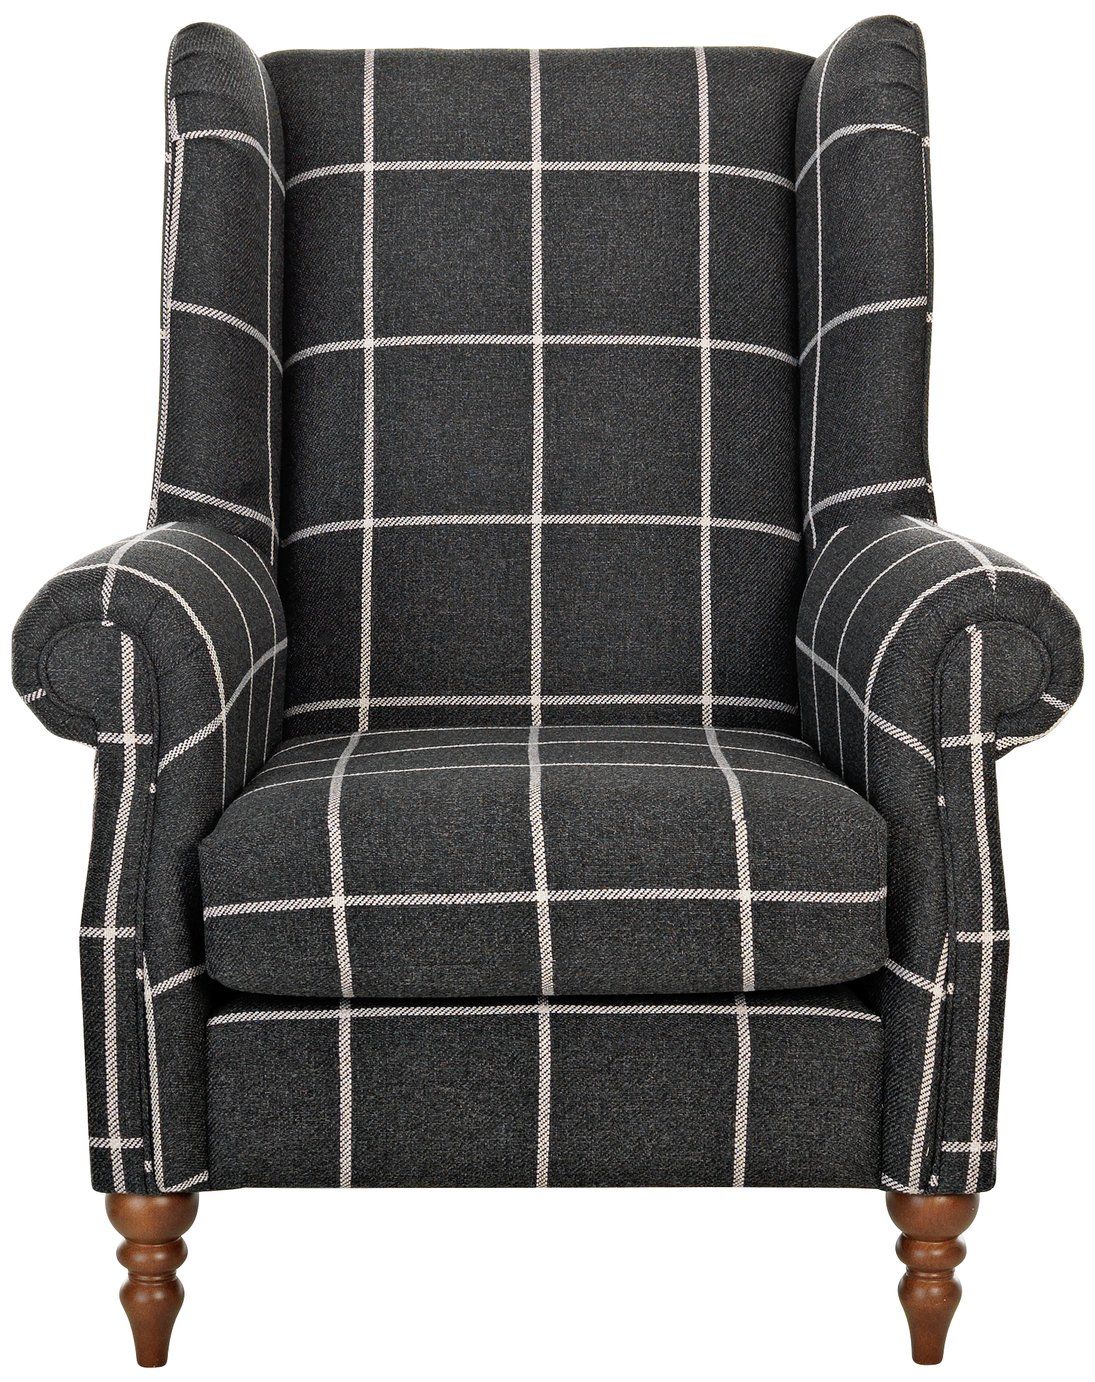 Argos Home Argyll Fabric High Back Chair - Charcoal